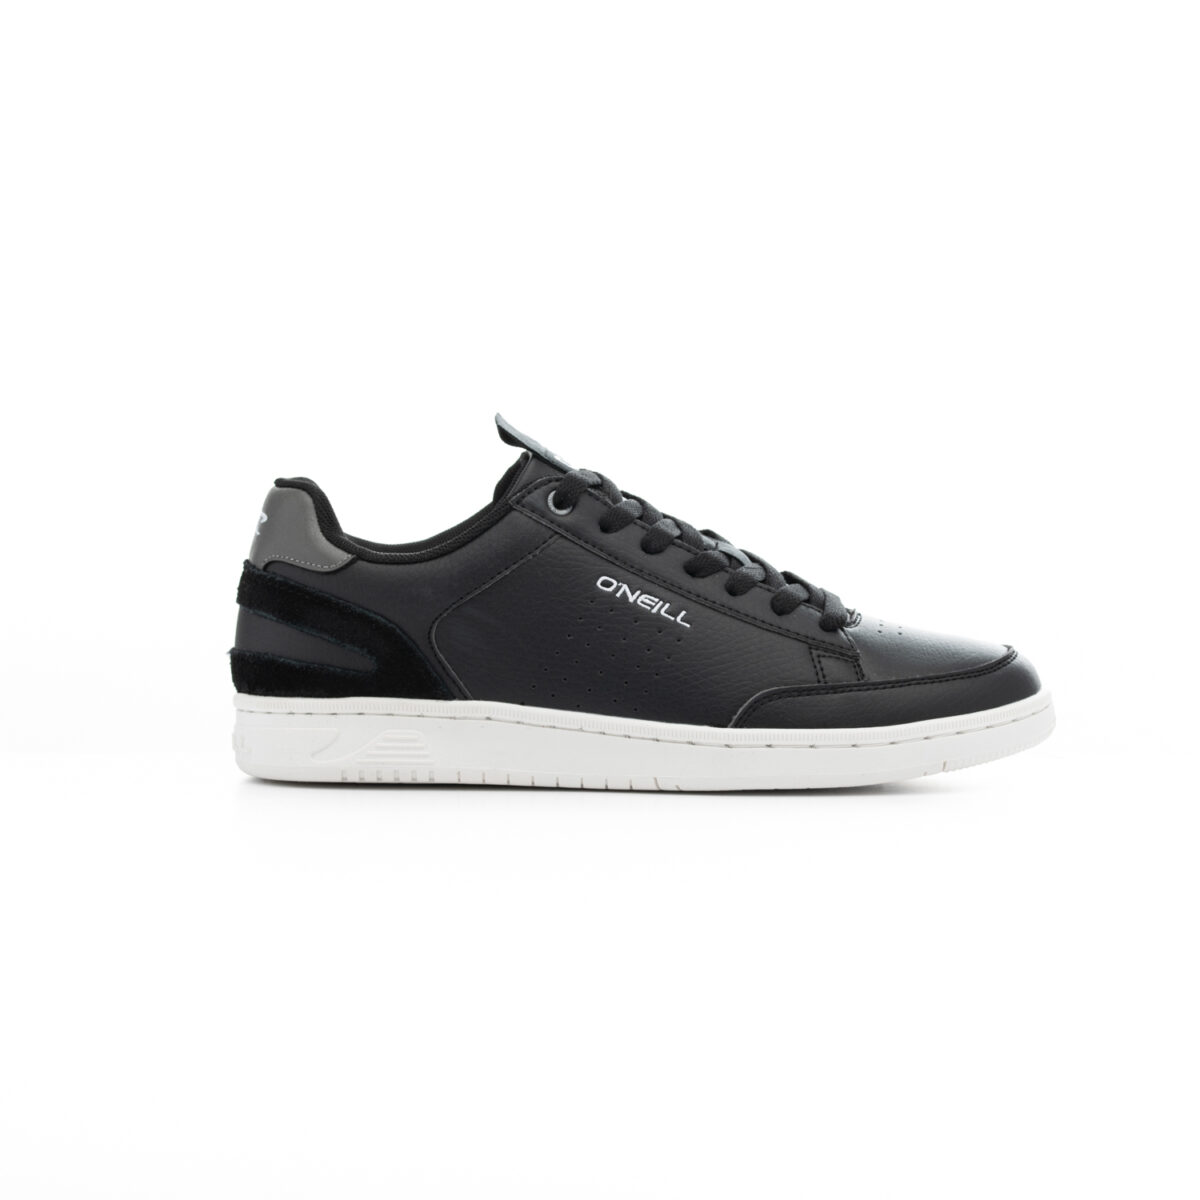 oneill black THE WEDGE 02